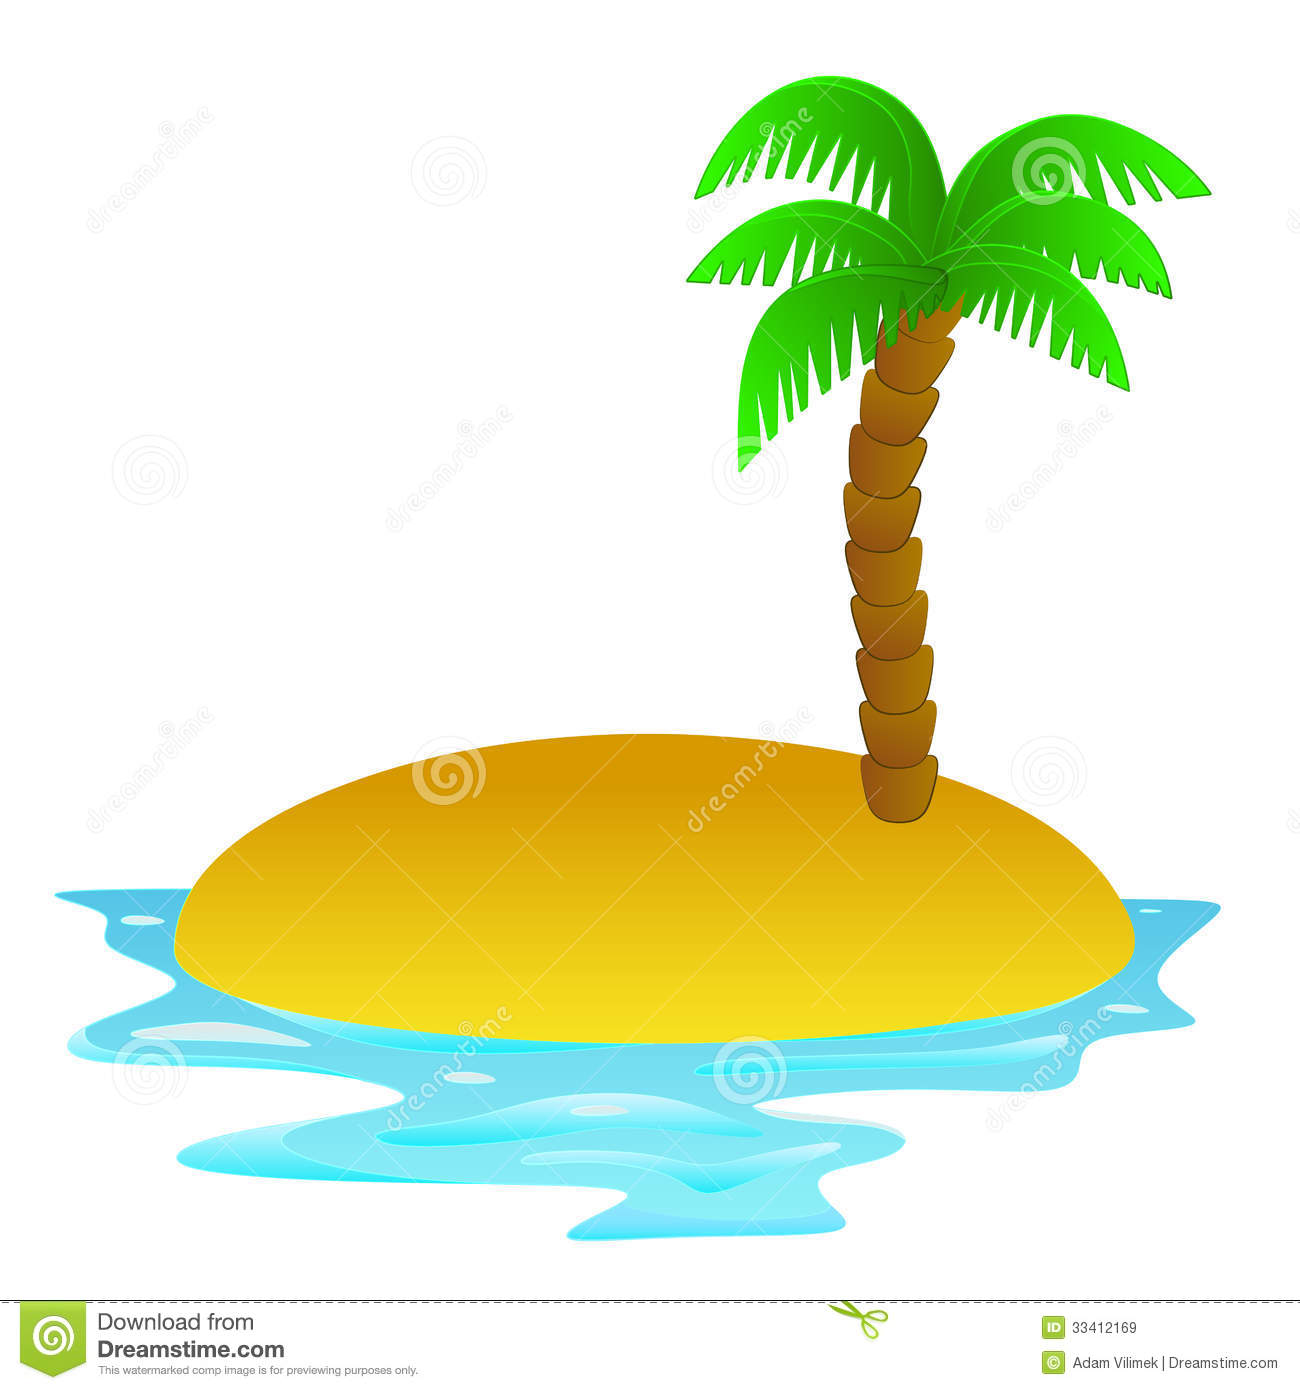 Clip Art Island Clip Art island free clipart kid lonely tropical sandy clip art illustration